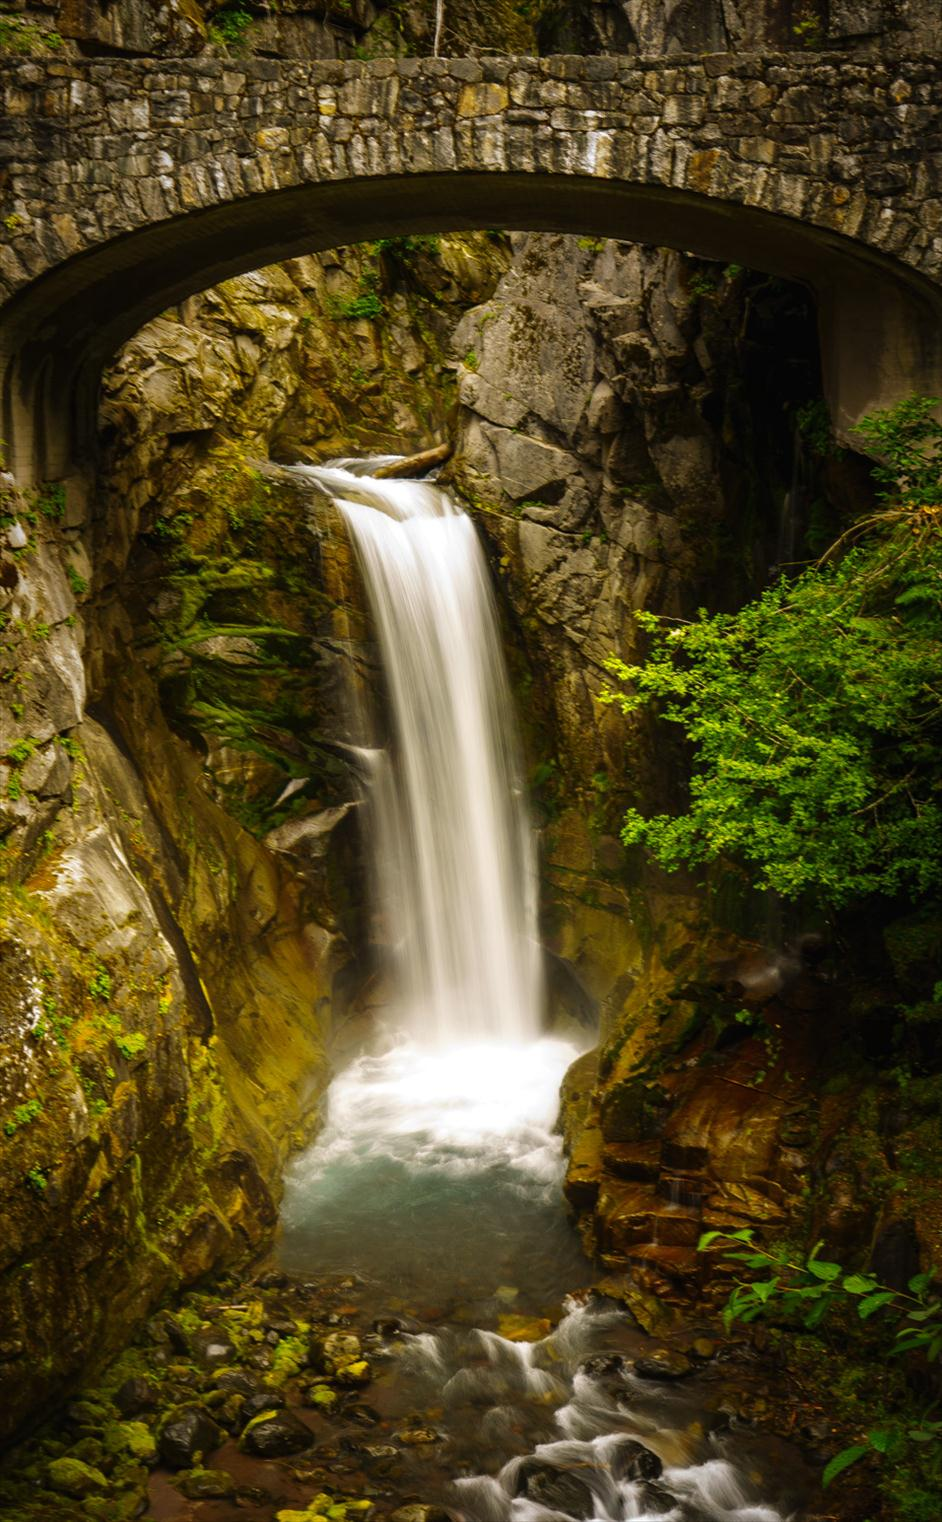 Christine Falls, Mout Rainier// Matt Kloskowski's Top 5 Landscapes to Photography // Nations Photo Lab